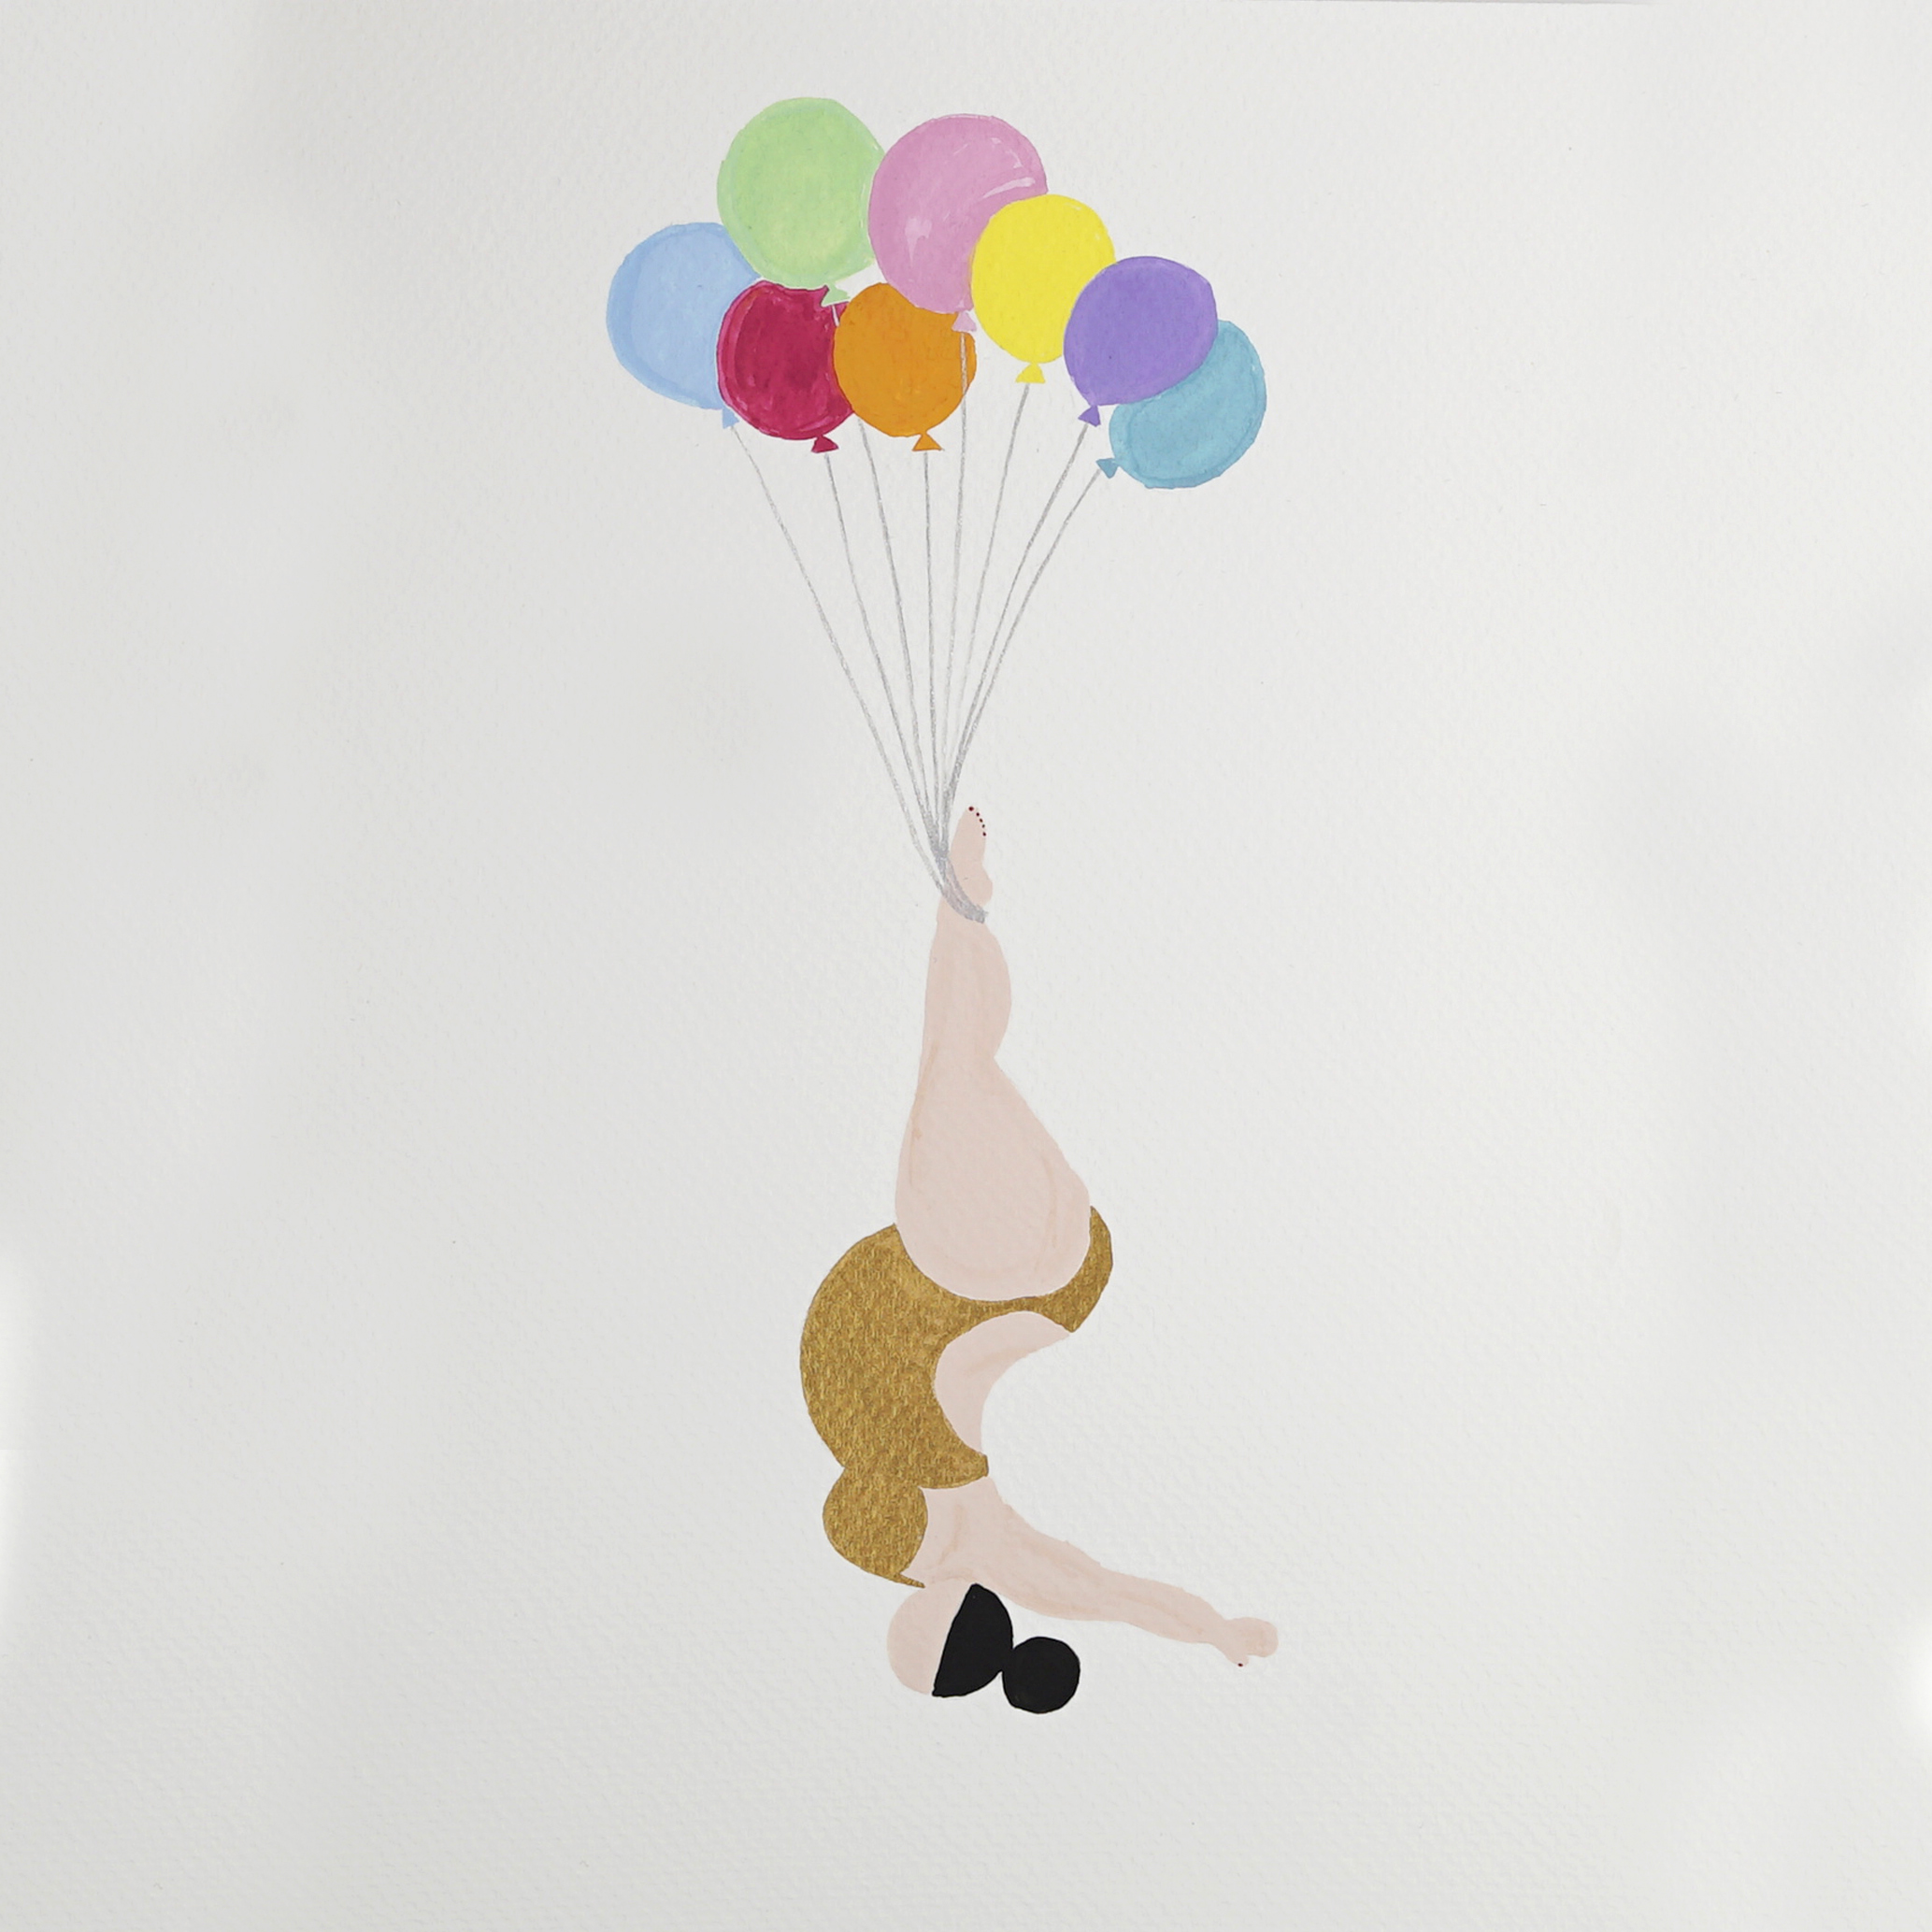 My Fat Lady balloon Lift me up